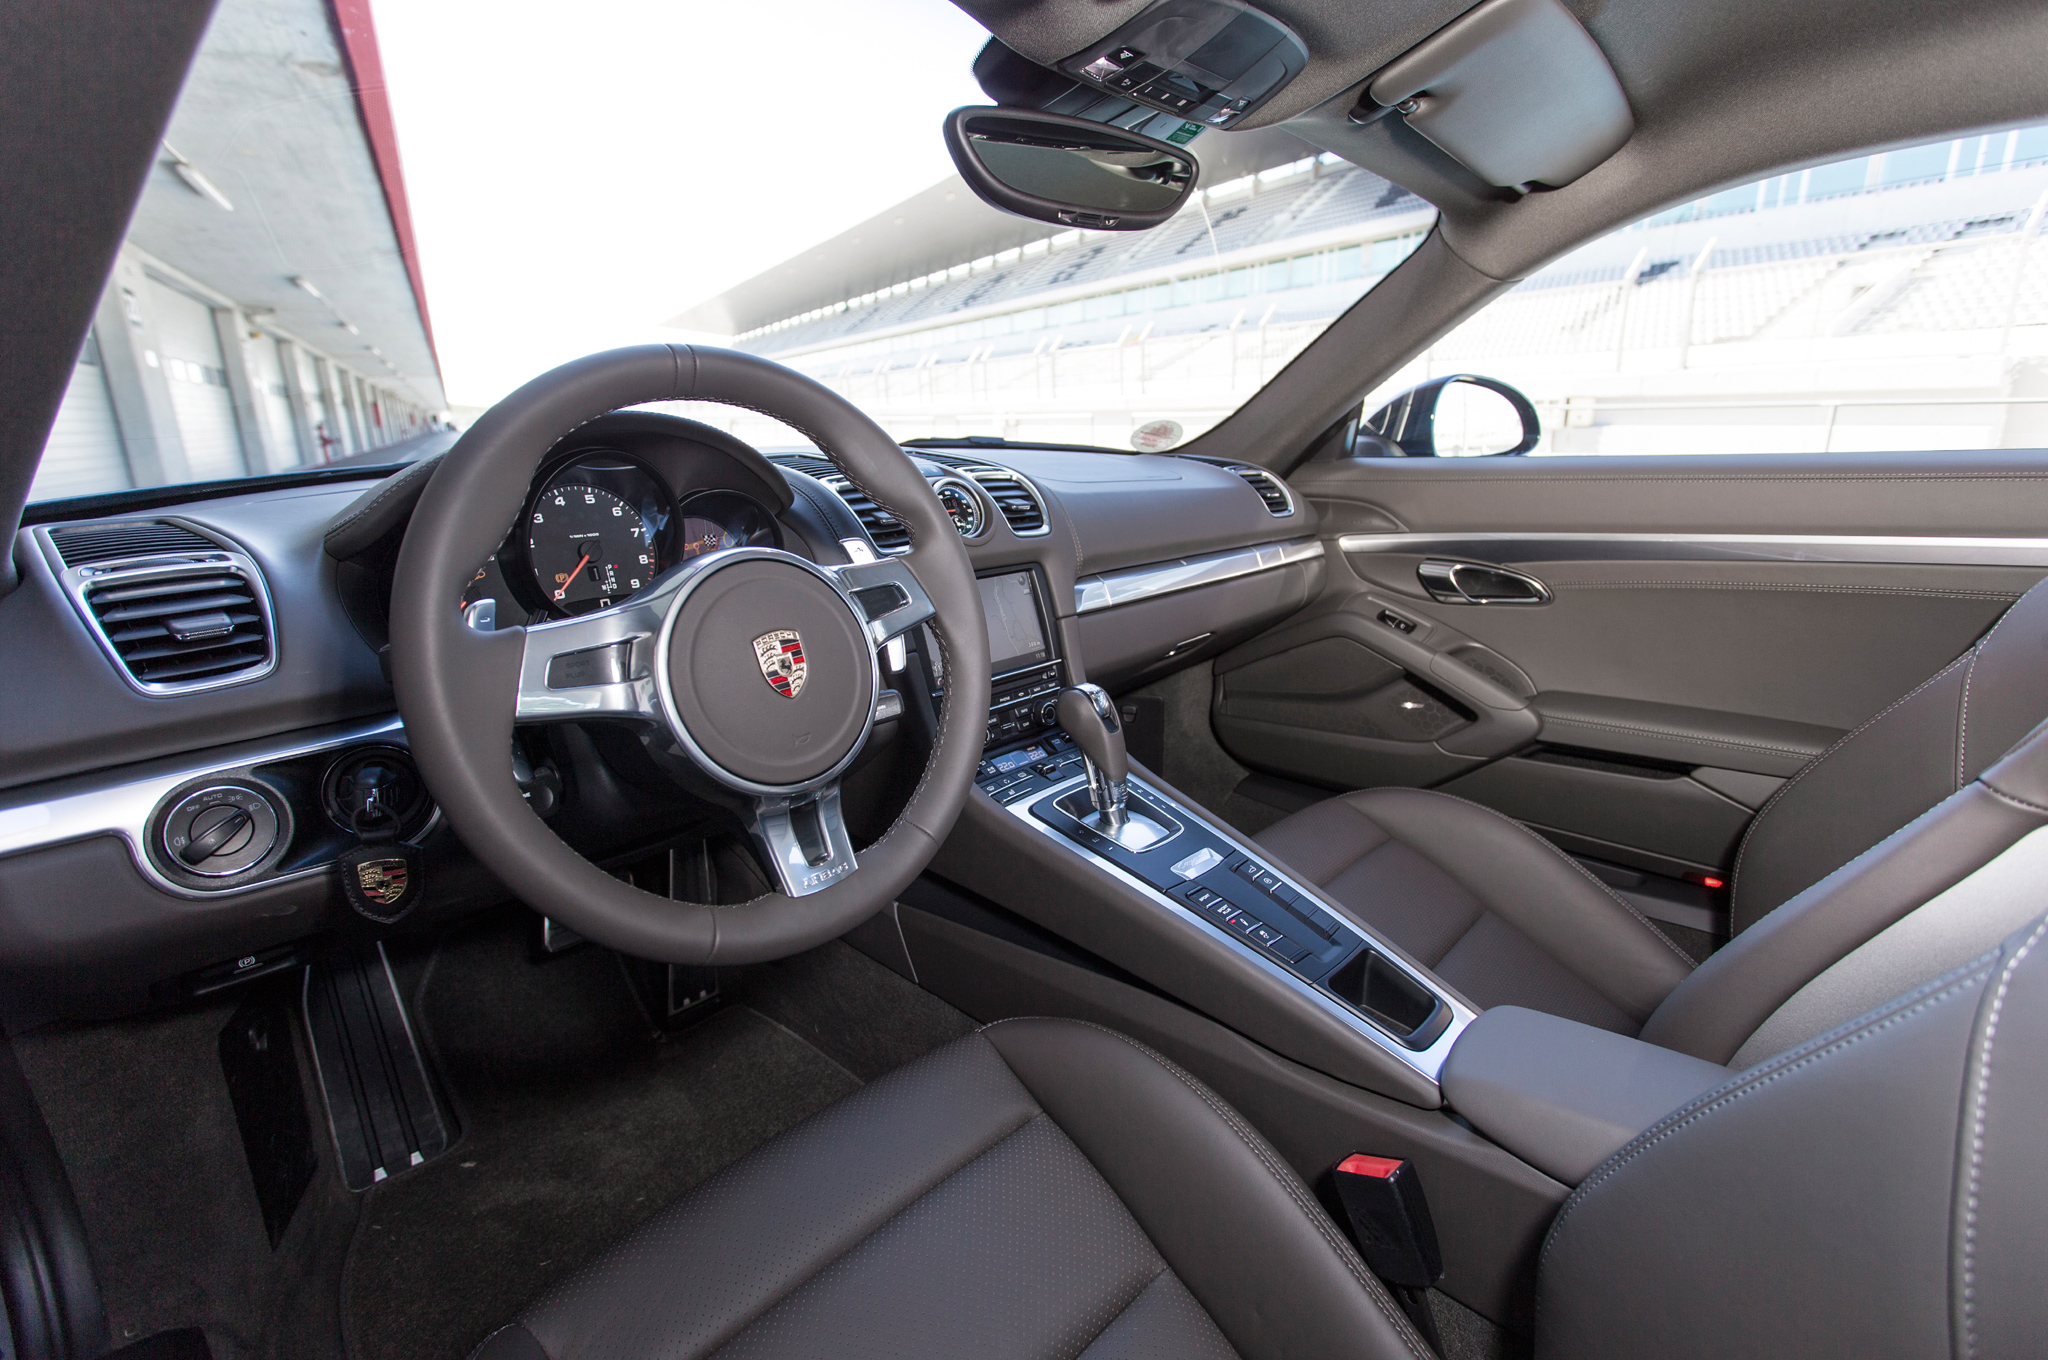 2014 Porsche Cayman Cockpit and Dashboard